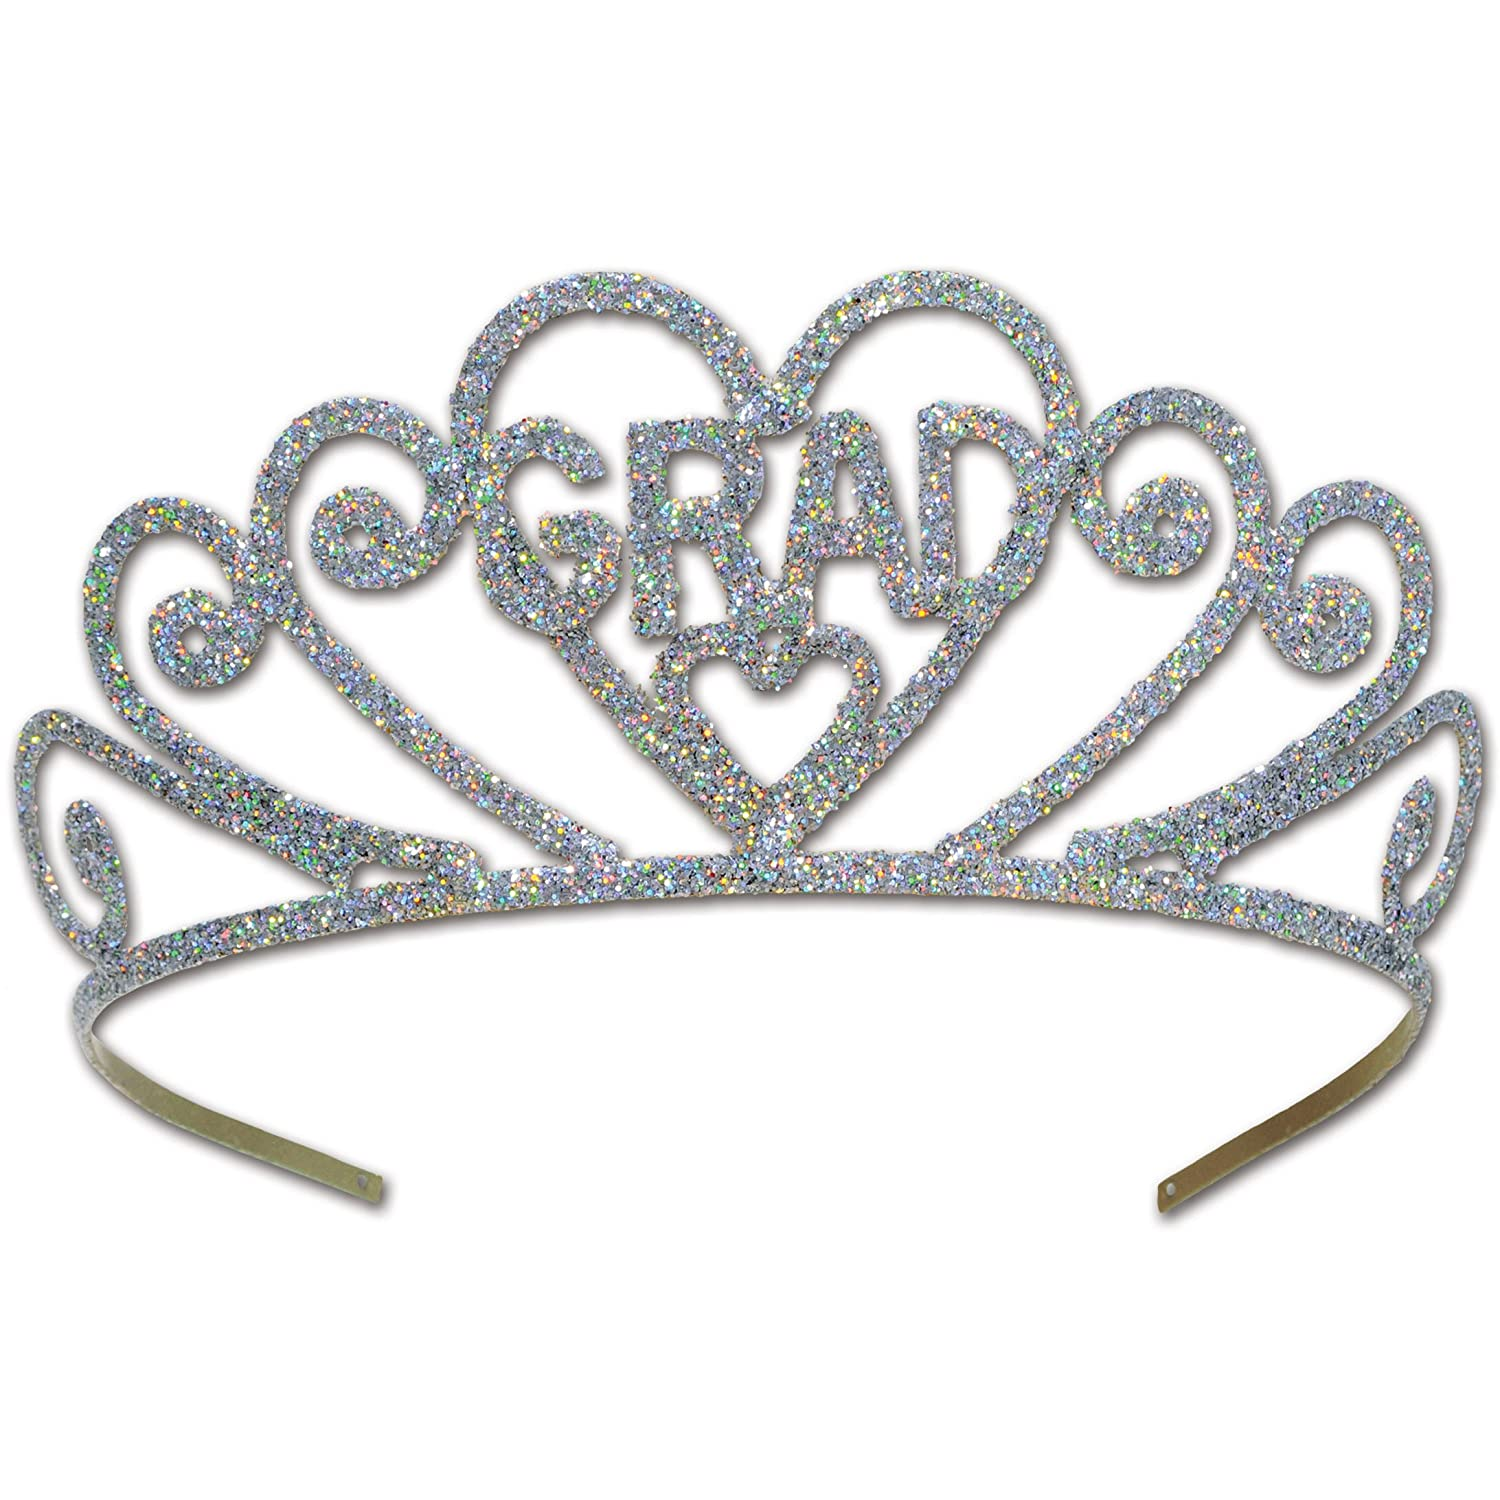 Beistle Glittered Metal Graduate Tiara